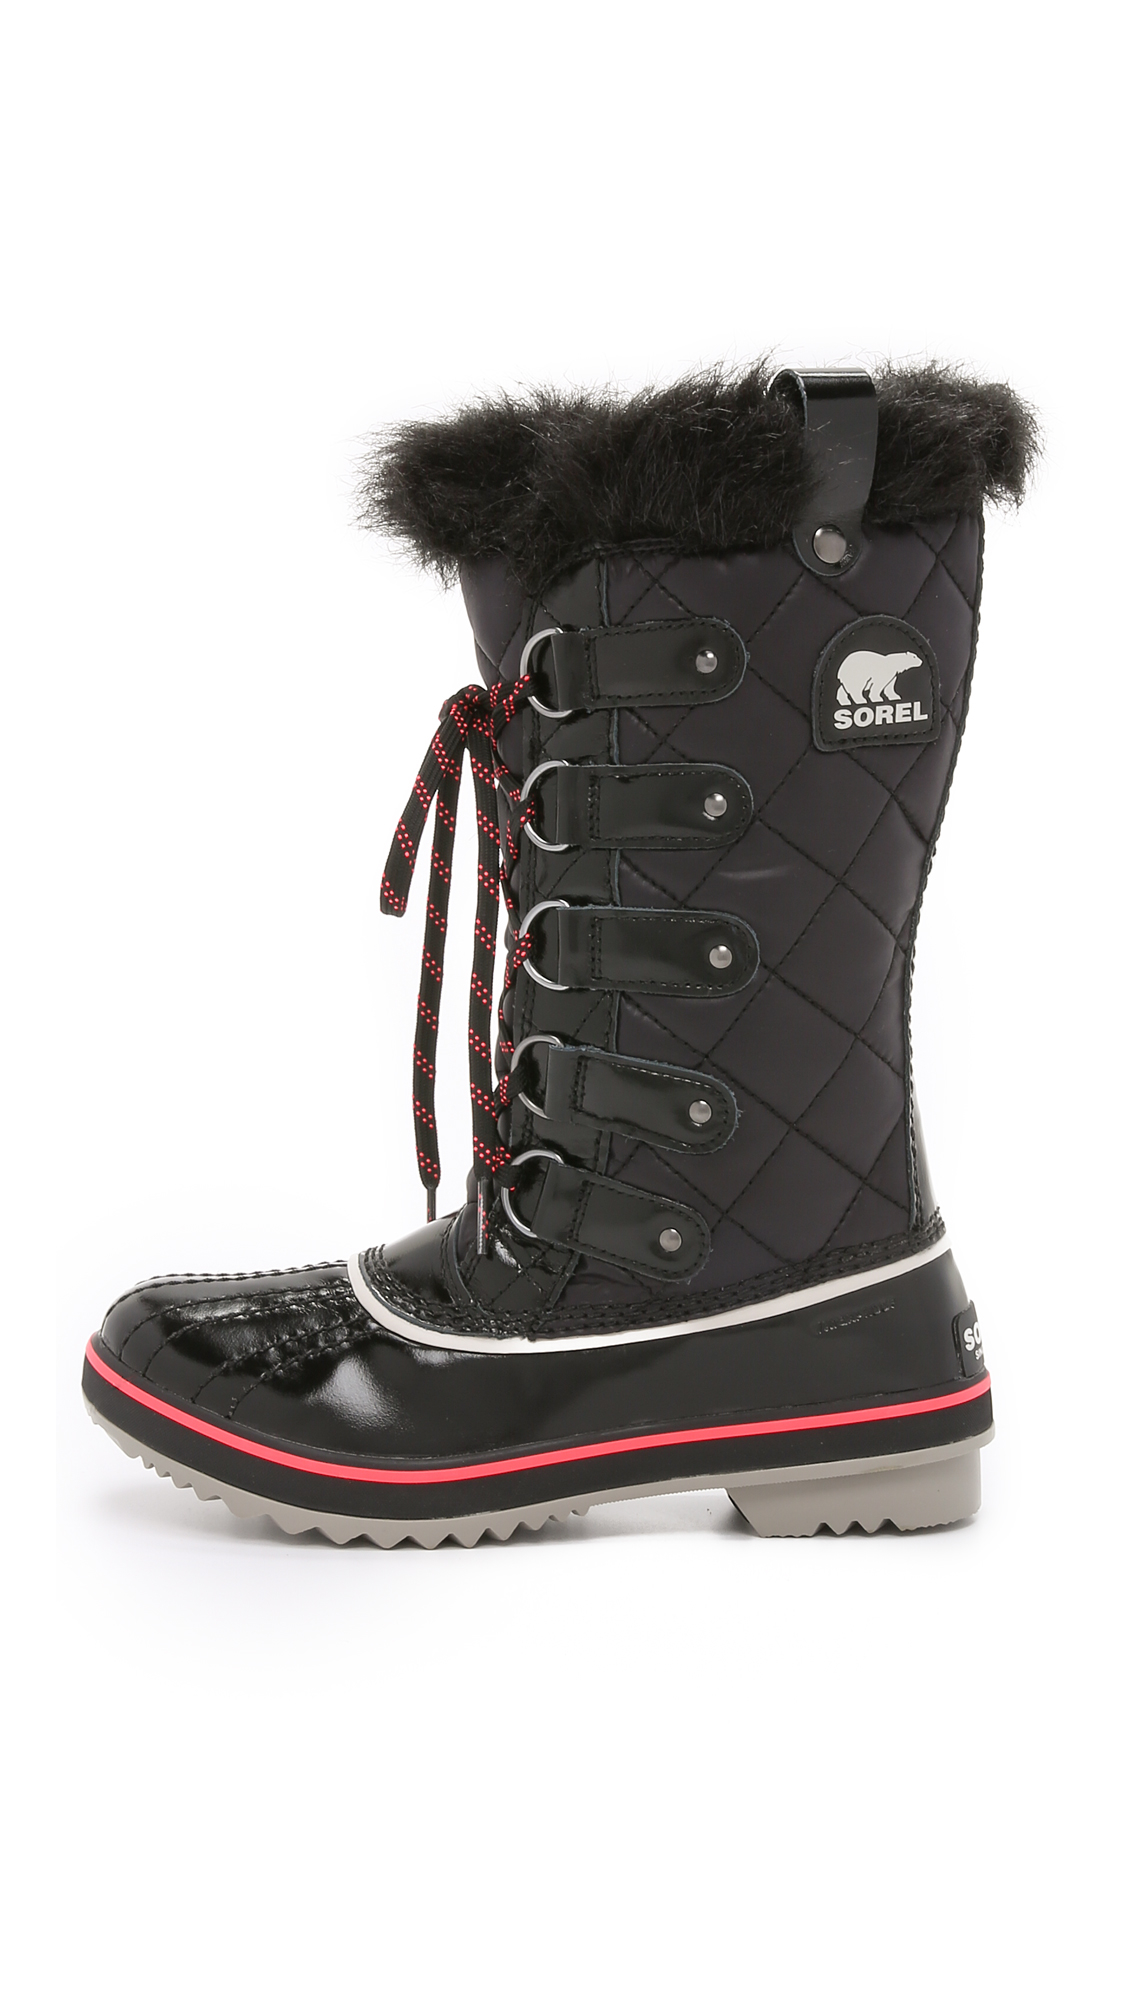 Sorel Tofino Quilted Water-Resistant Boots in Black